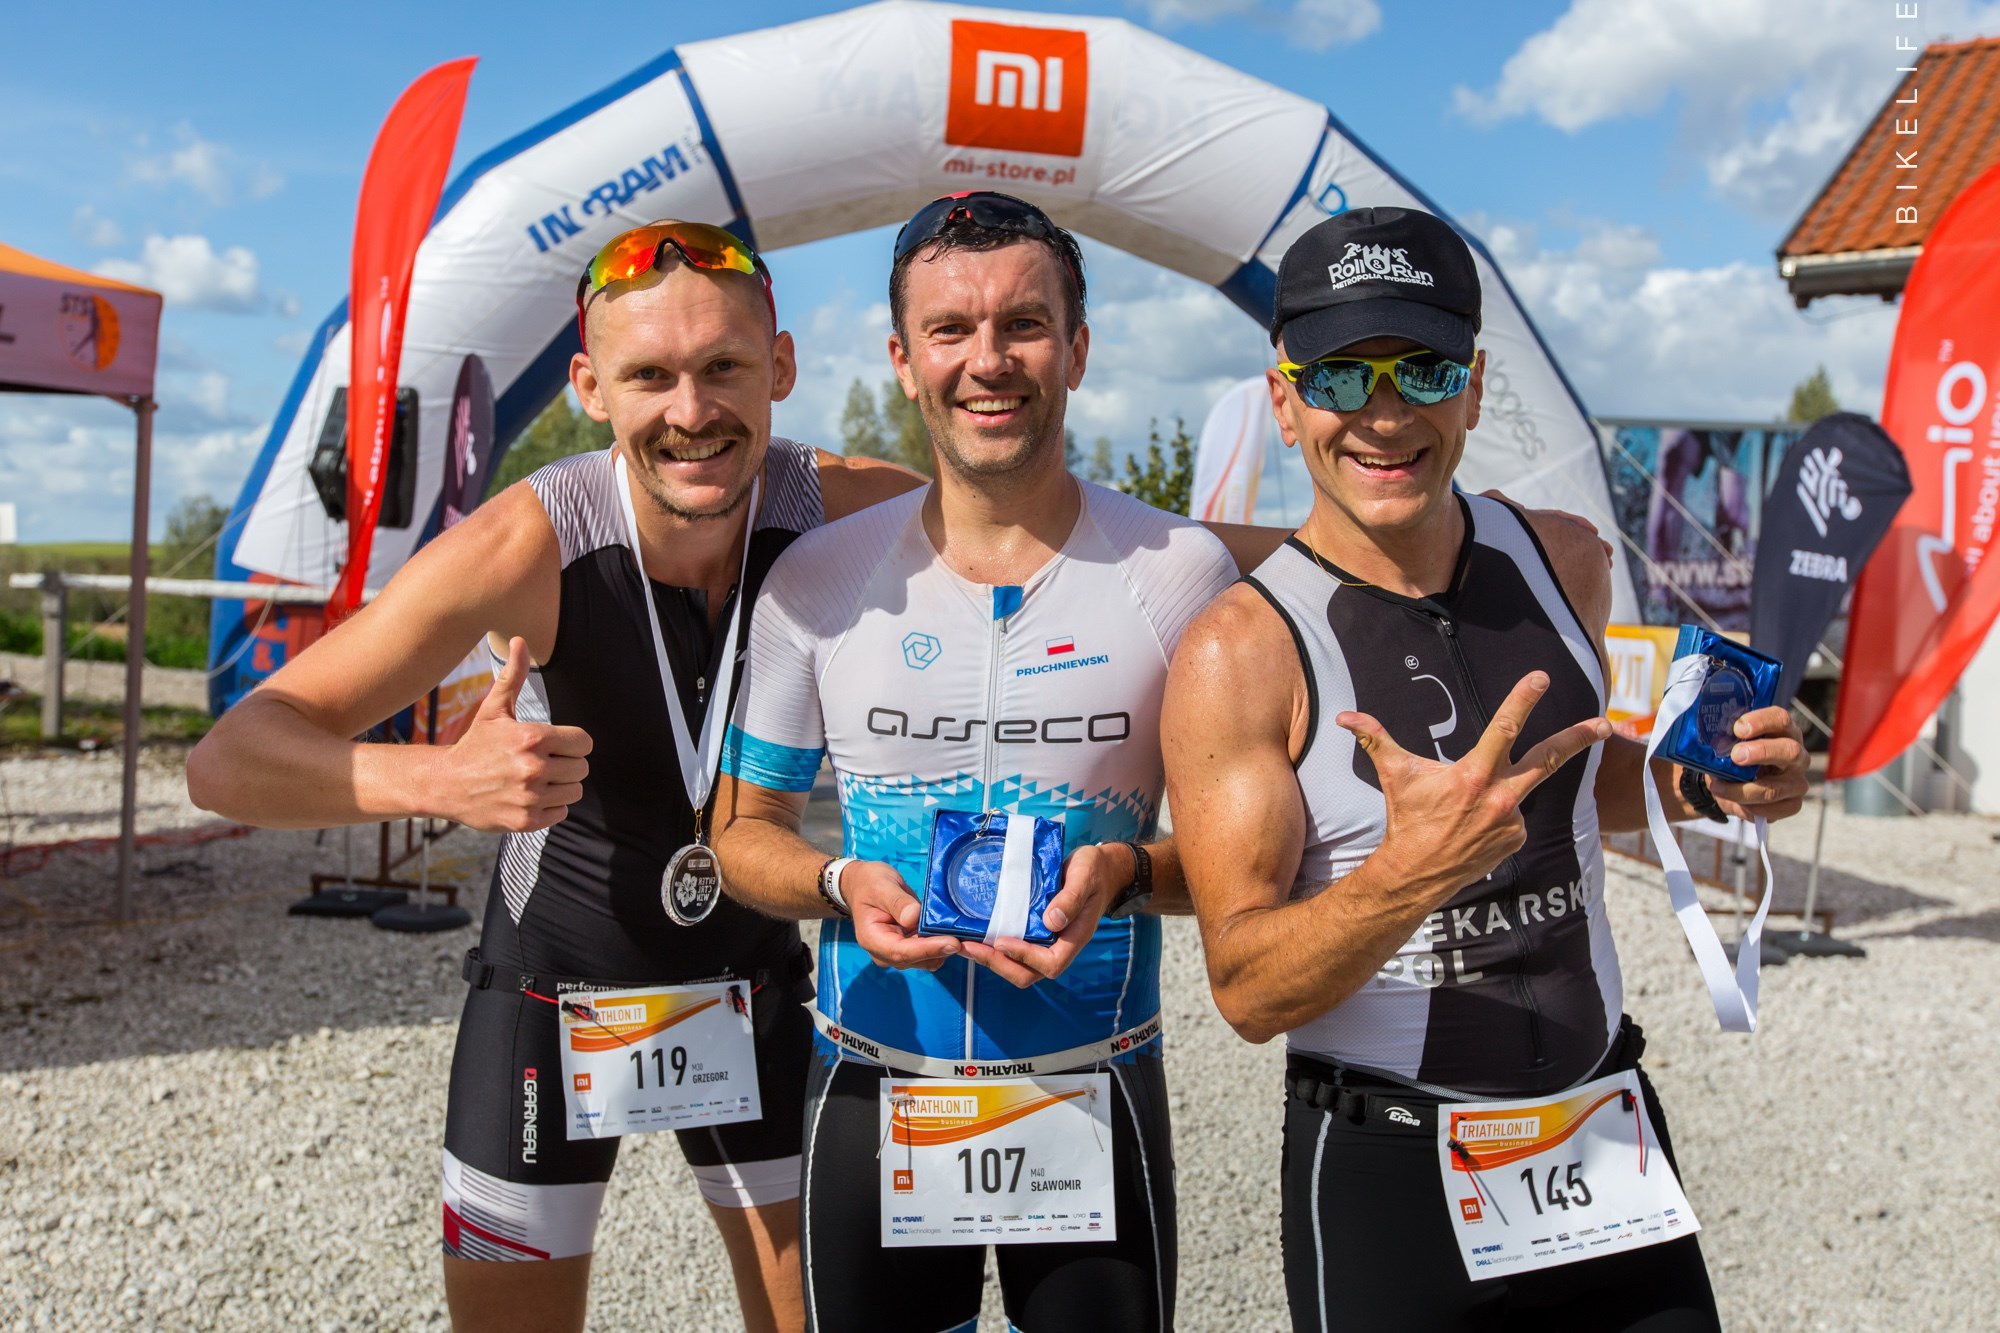 Triathlon IT & Business 2019